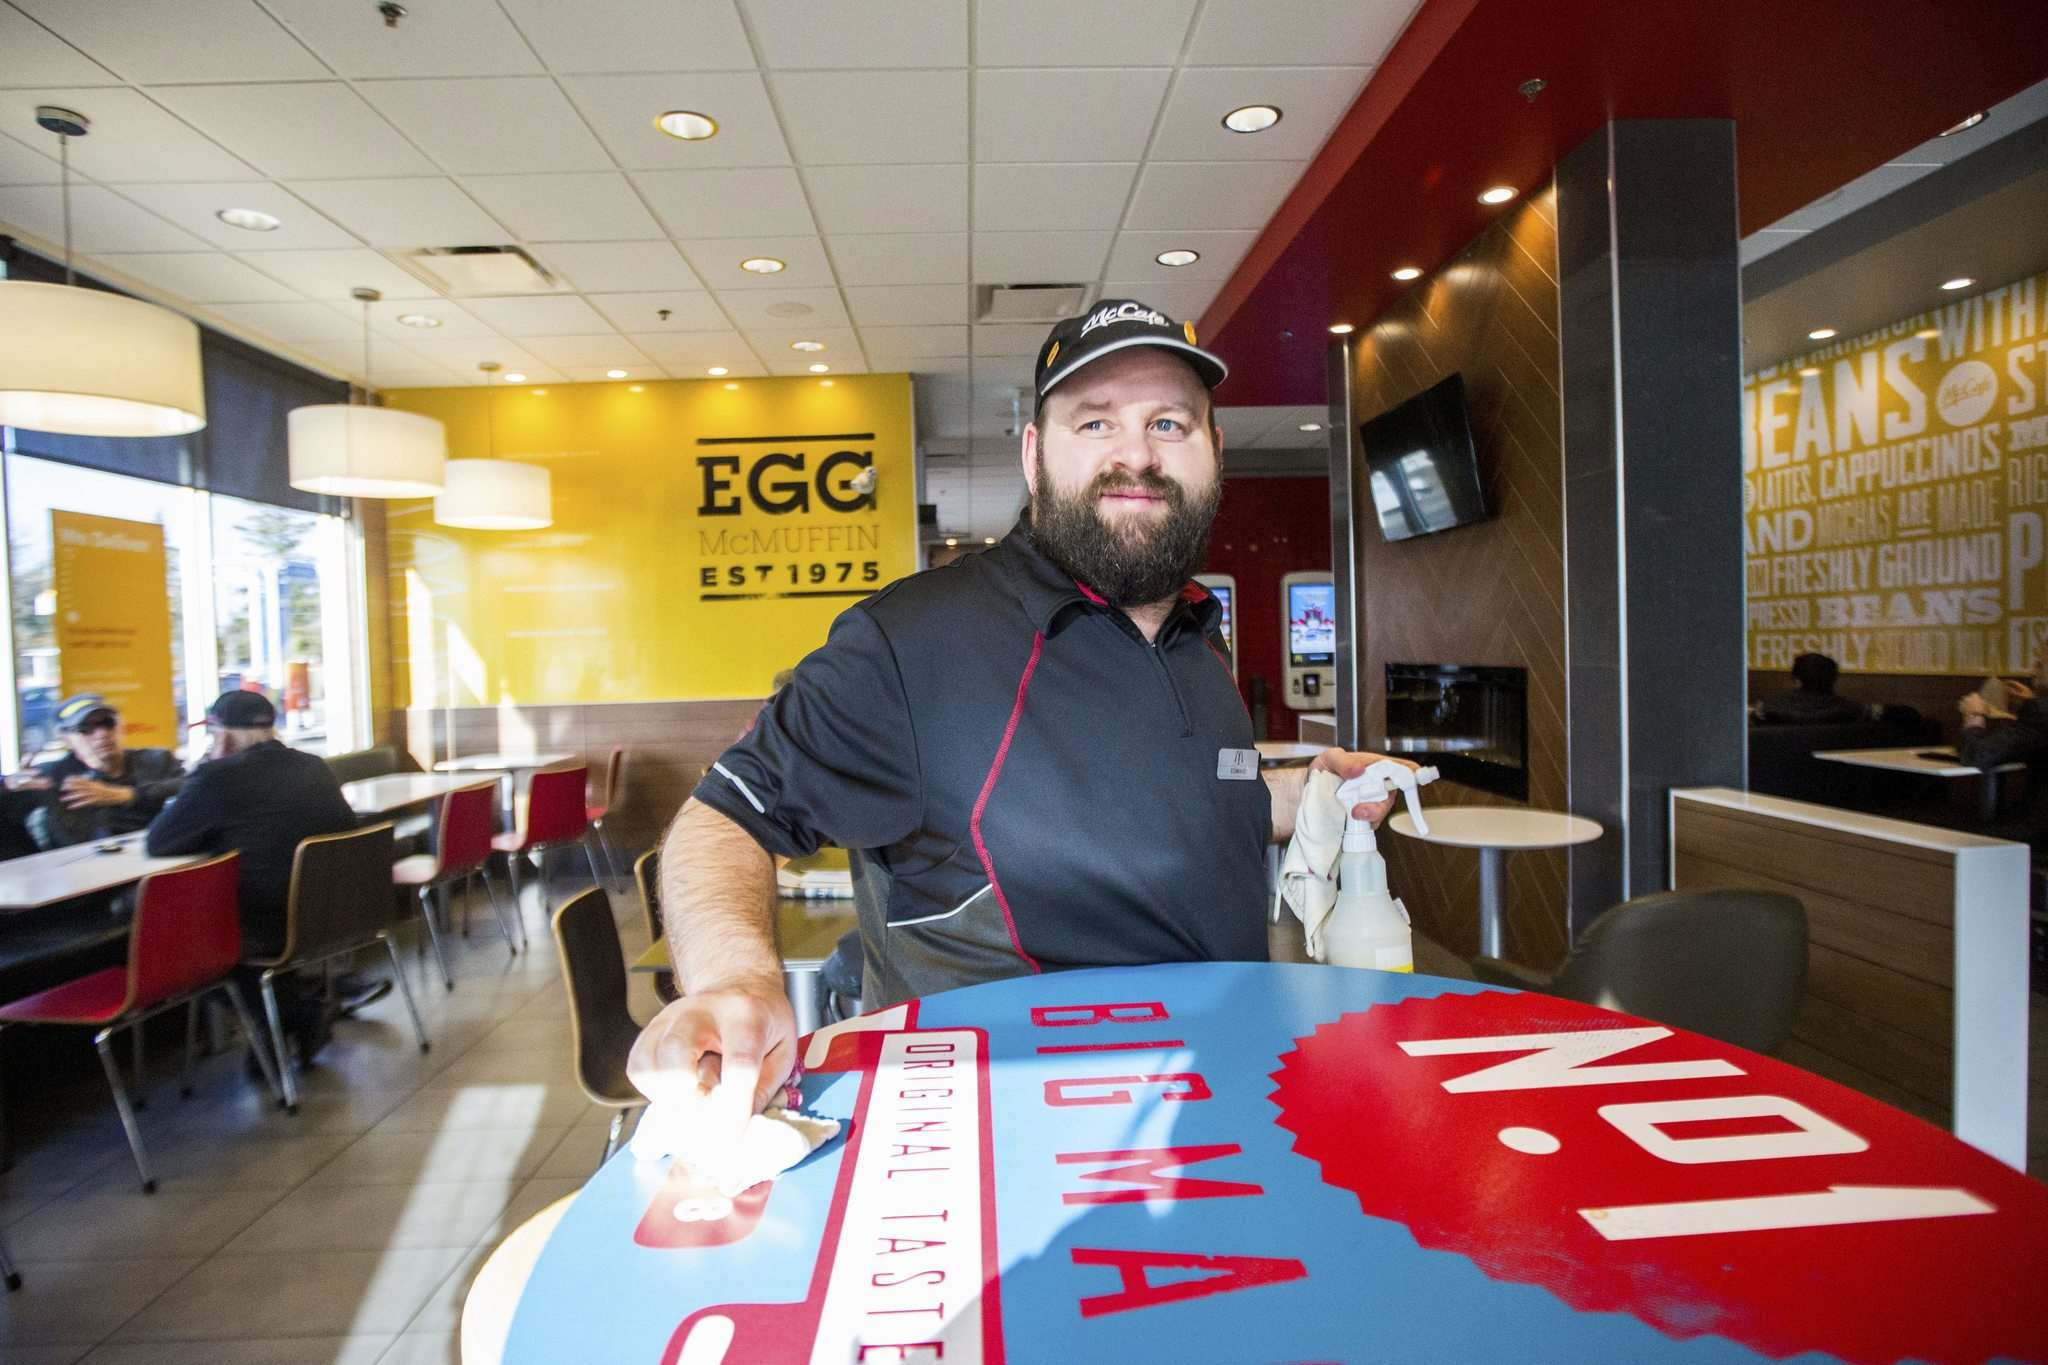 MIKAELA MACKENZIE / WINNIPEG FREE PRESS</p><p>Edward Case, an adult living with special needs, cleans tables and mops floors at the McDonald's restaurant on Henderson Highway.</p></p>